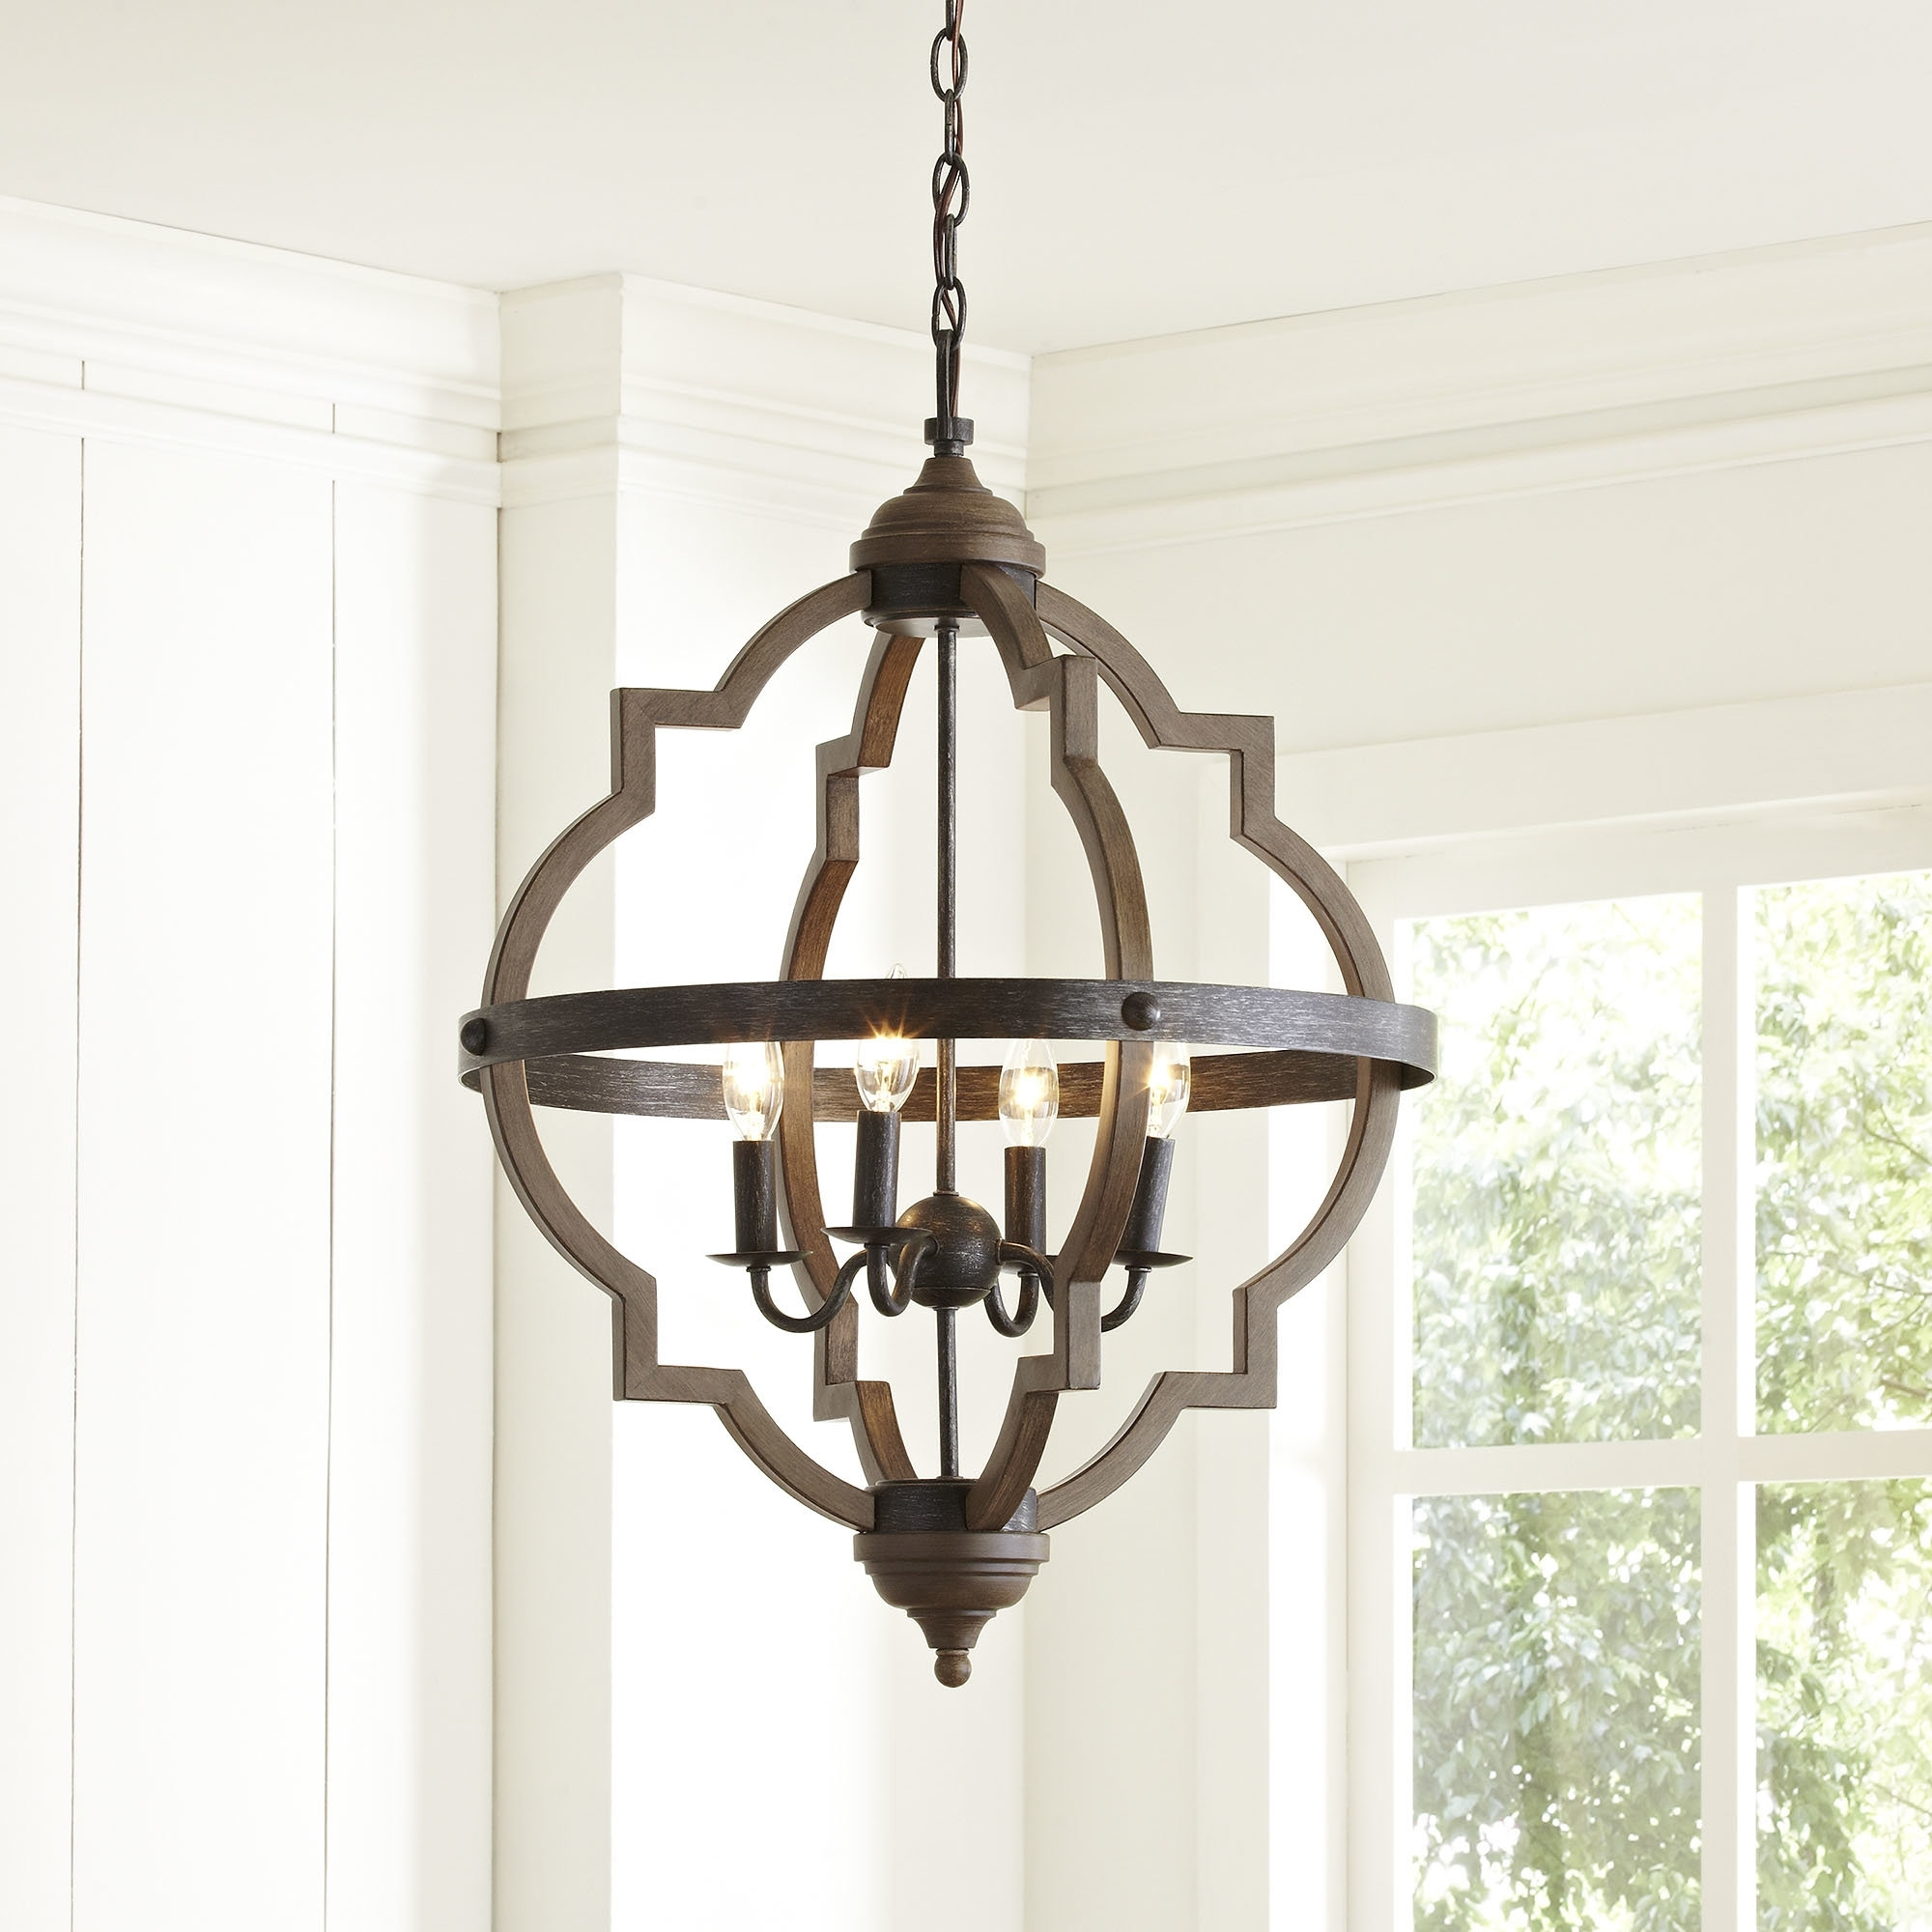 Wayfair Chandeliers Intended For Fashionable Stunning Design Ideas Wayfair Lighting Chandeliers Decoration You Ll (View 10 of 20)